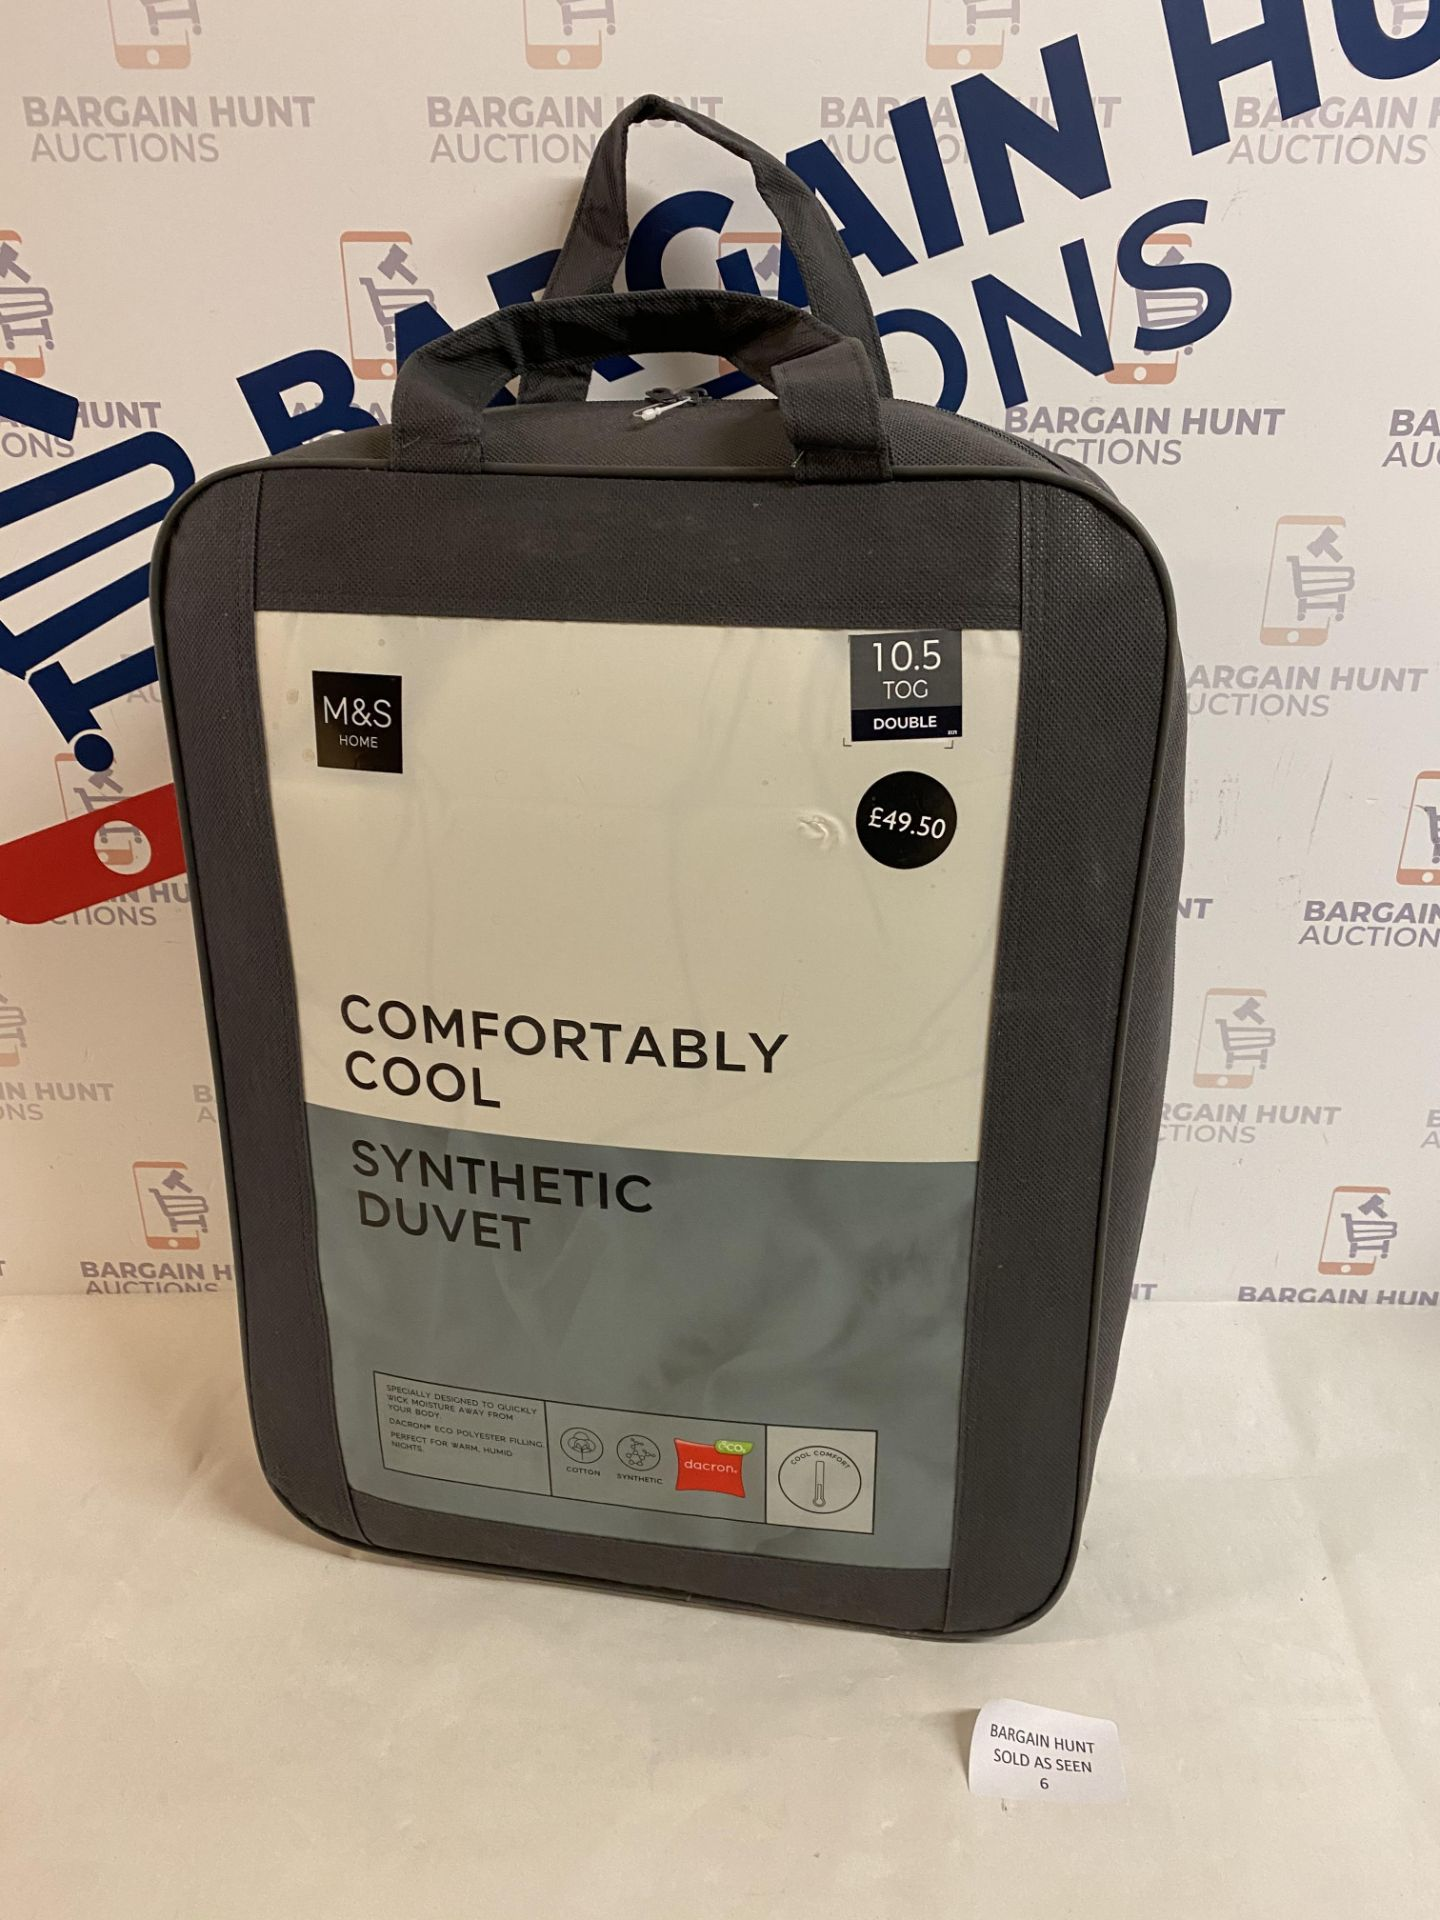 Comfortably Cool Synthetic 10.5 Tog Duvet, Double RRP £49.50